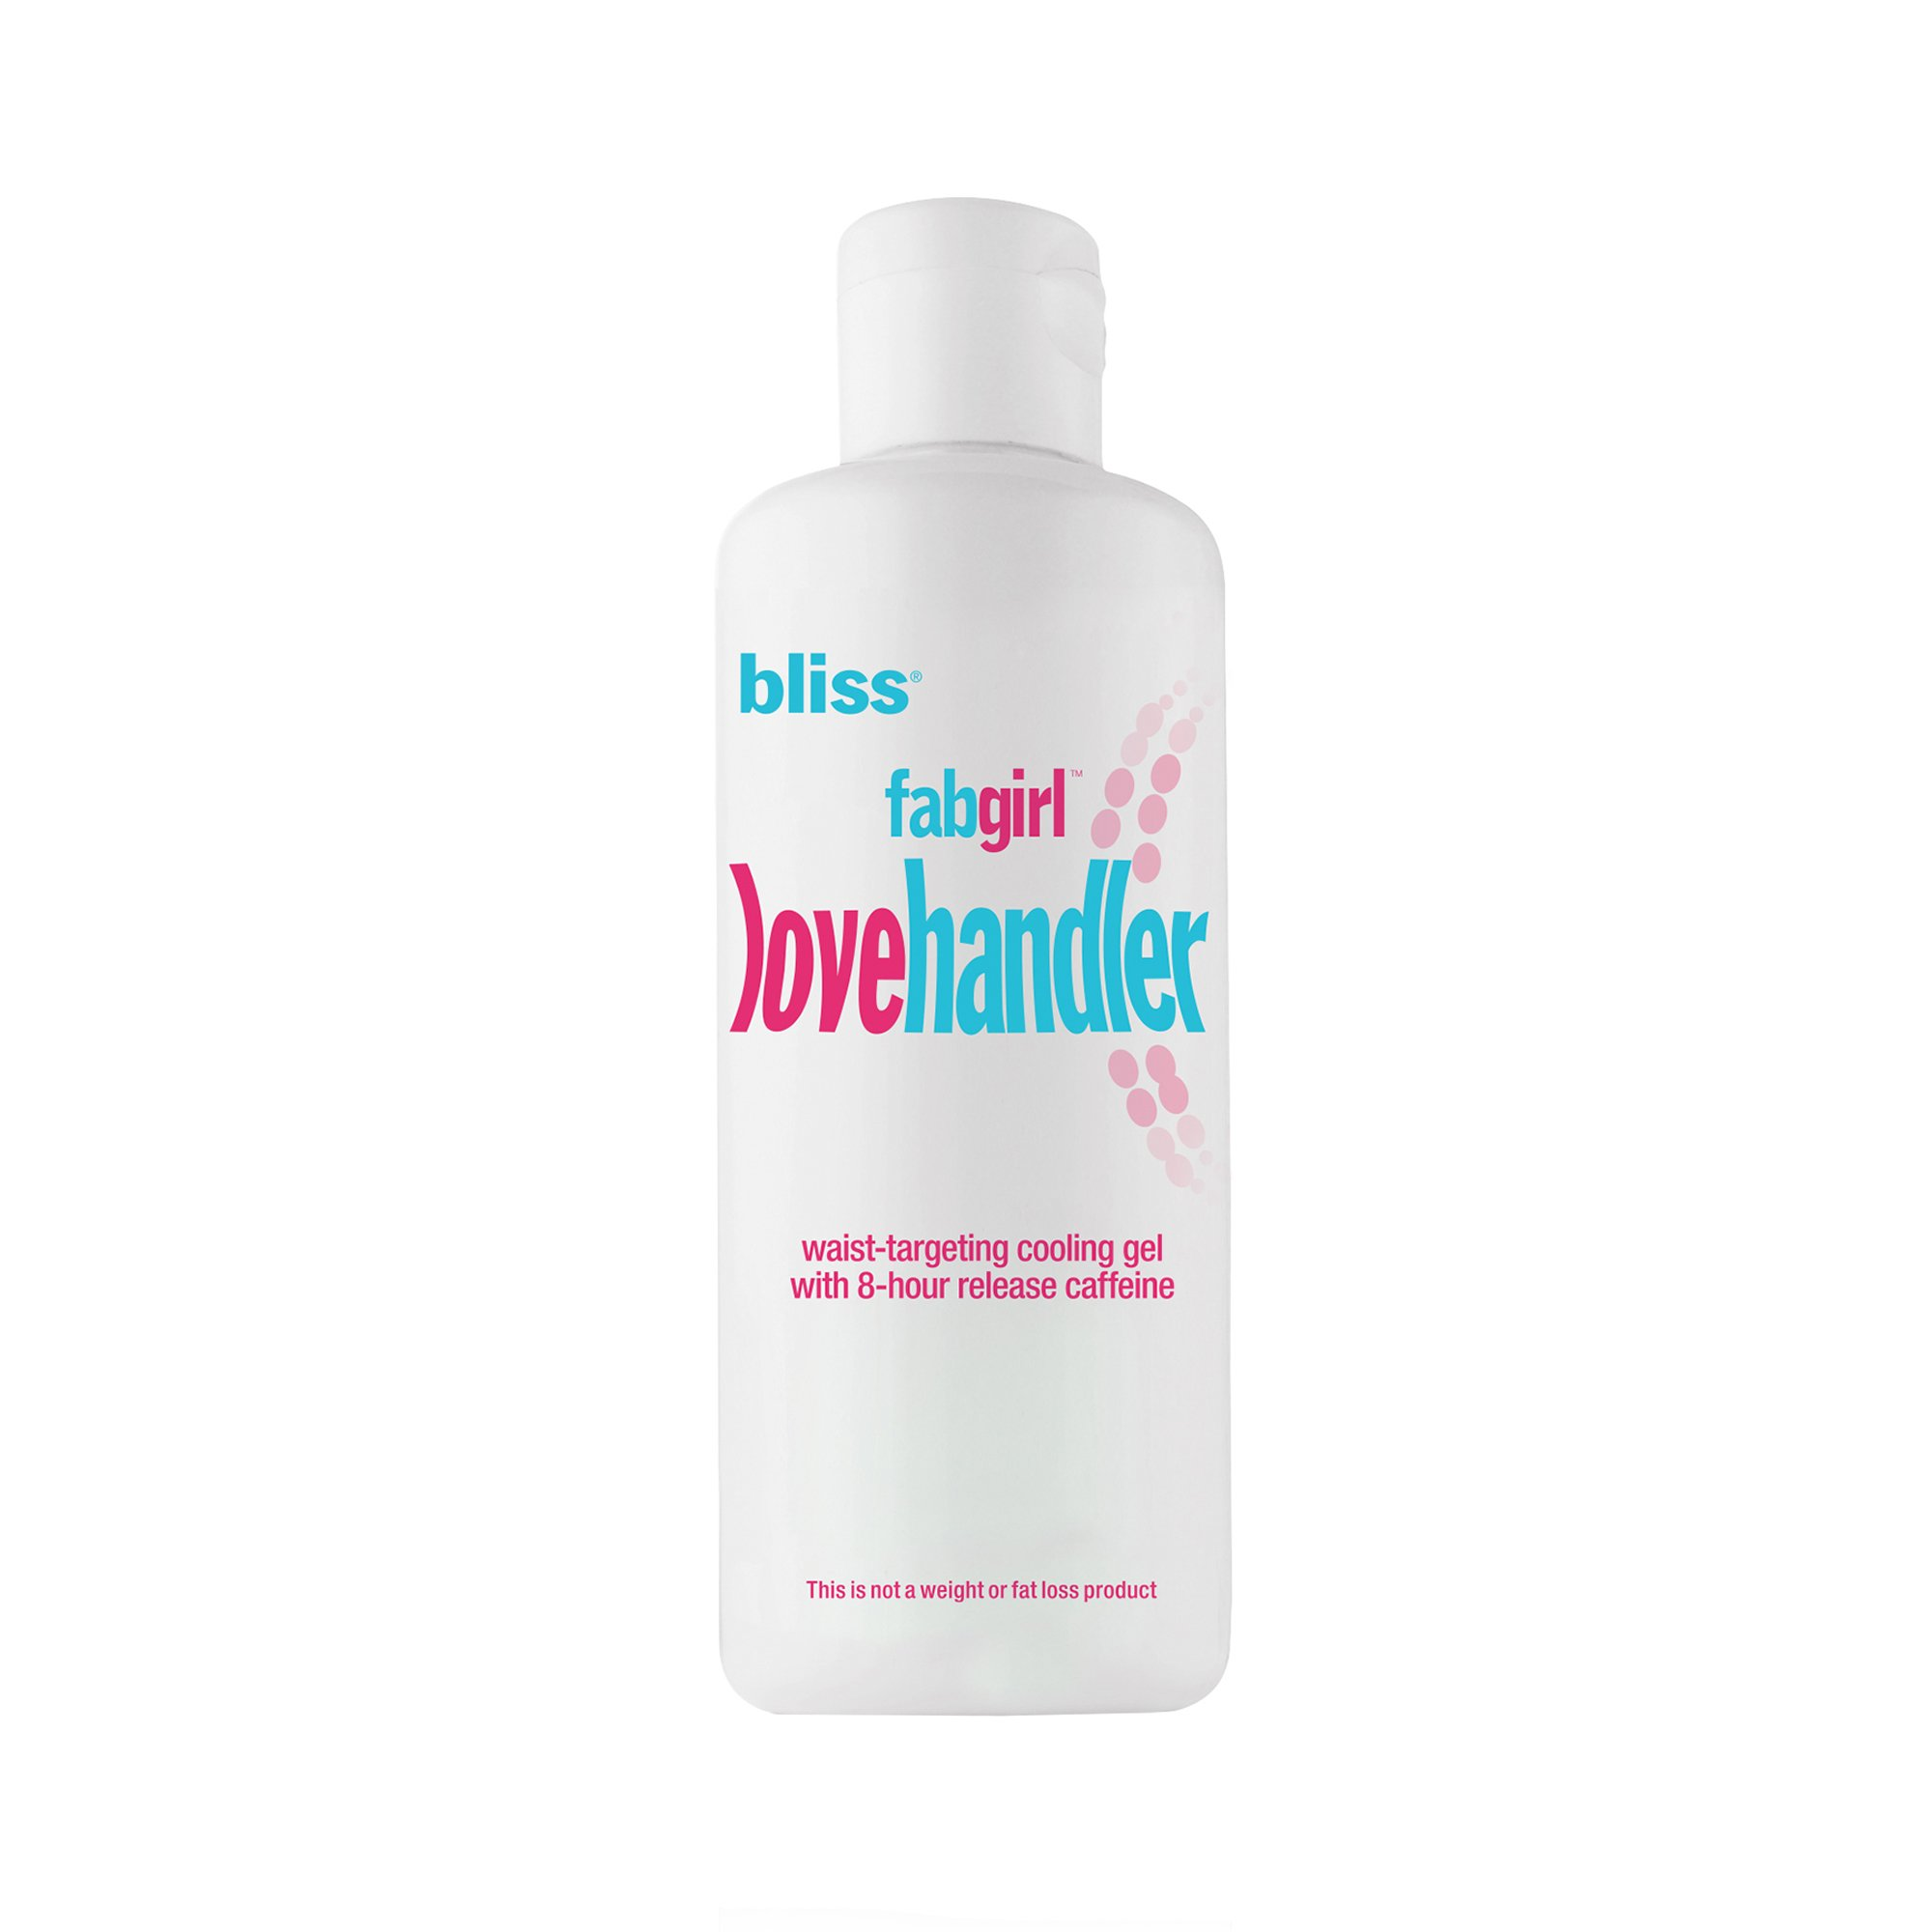 bliss The Lovehandler | Waist Targeted Cooling Gel | With Caffeine & Botanical Extracts | For Weight Loss & Fat Burning Support | 8.5 fl. oz.